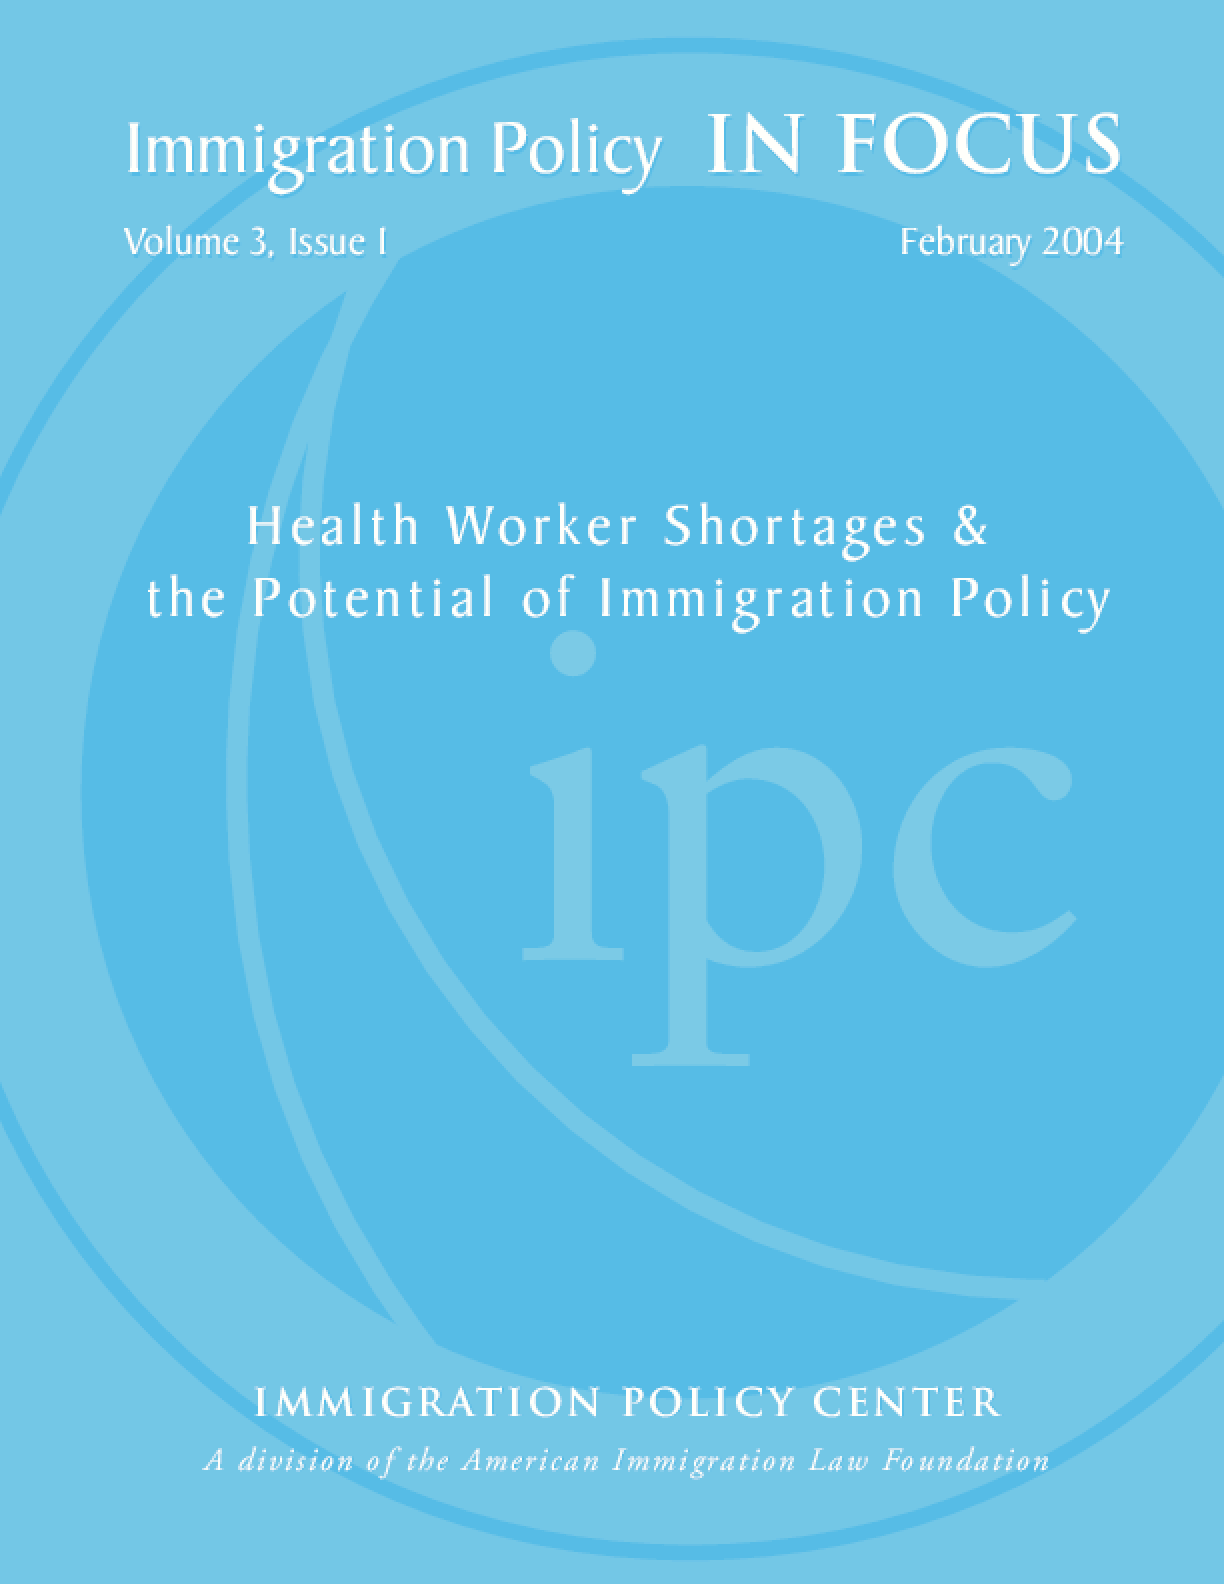 Health Worker Shortages & the Potential of Immigration Policy